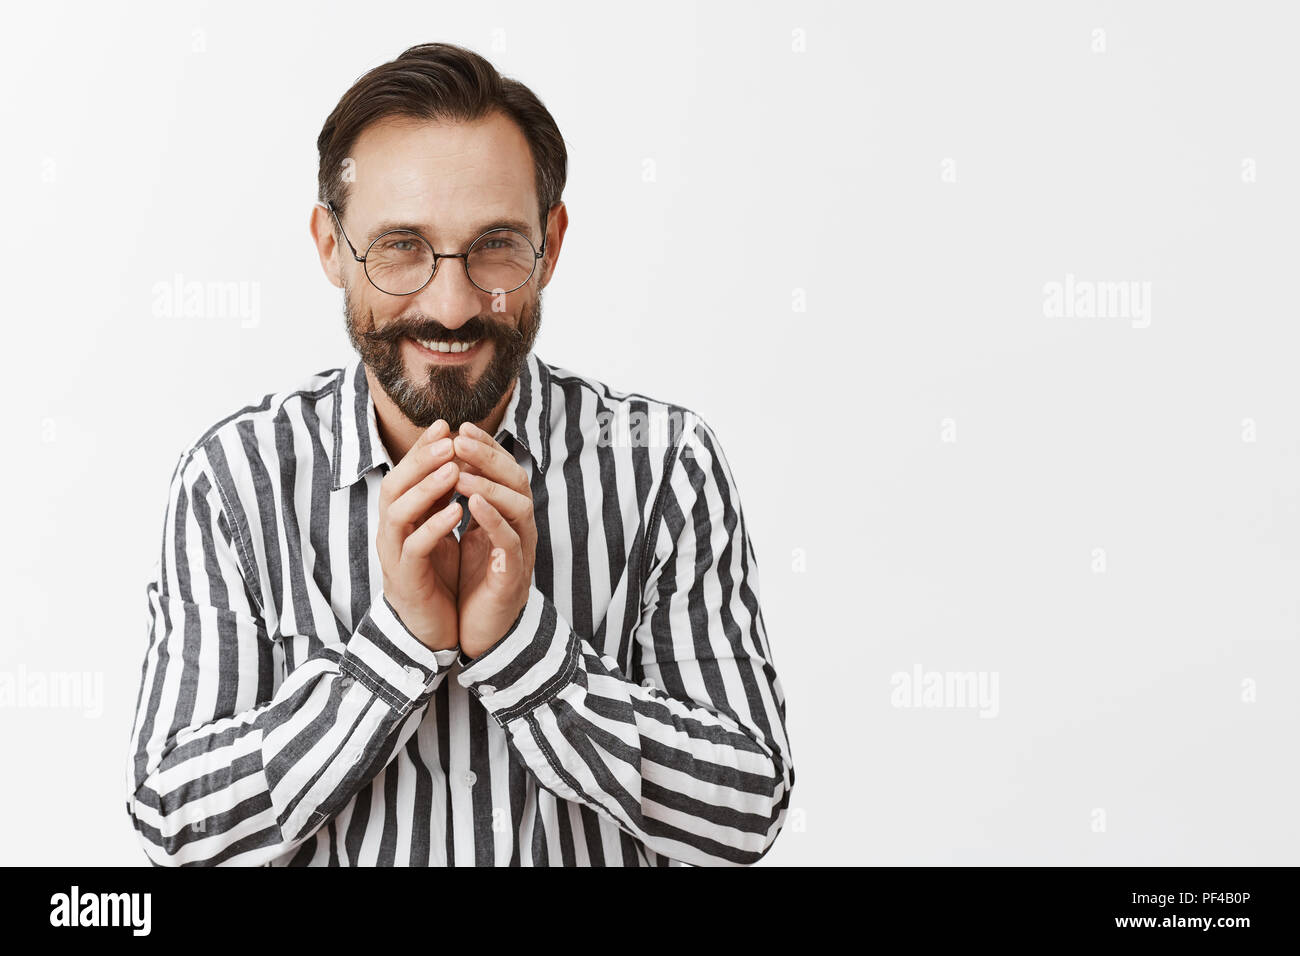 Excellent, everything goes by plan. Portrait of pleased grinning tricky man with beard and moustache having some intention in mind, steeping fingers and smiling with curious and mysterious expression - Stock Image